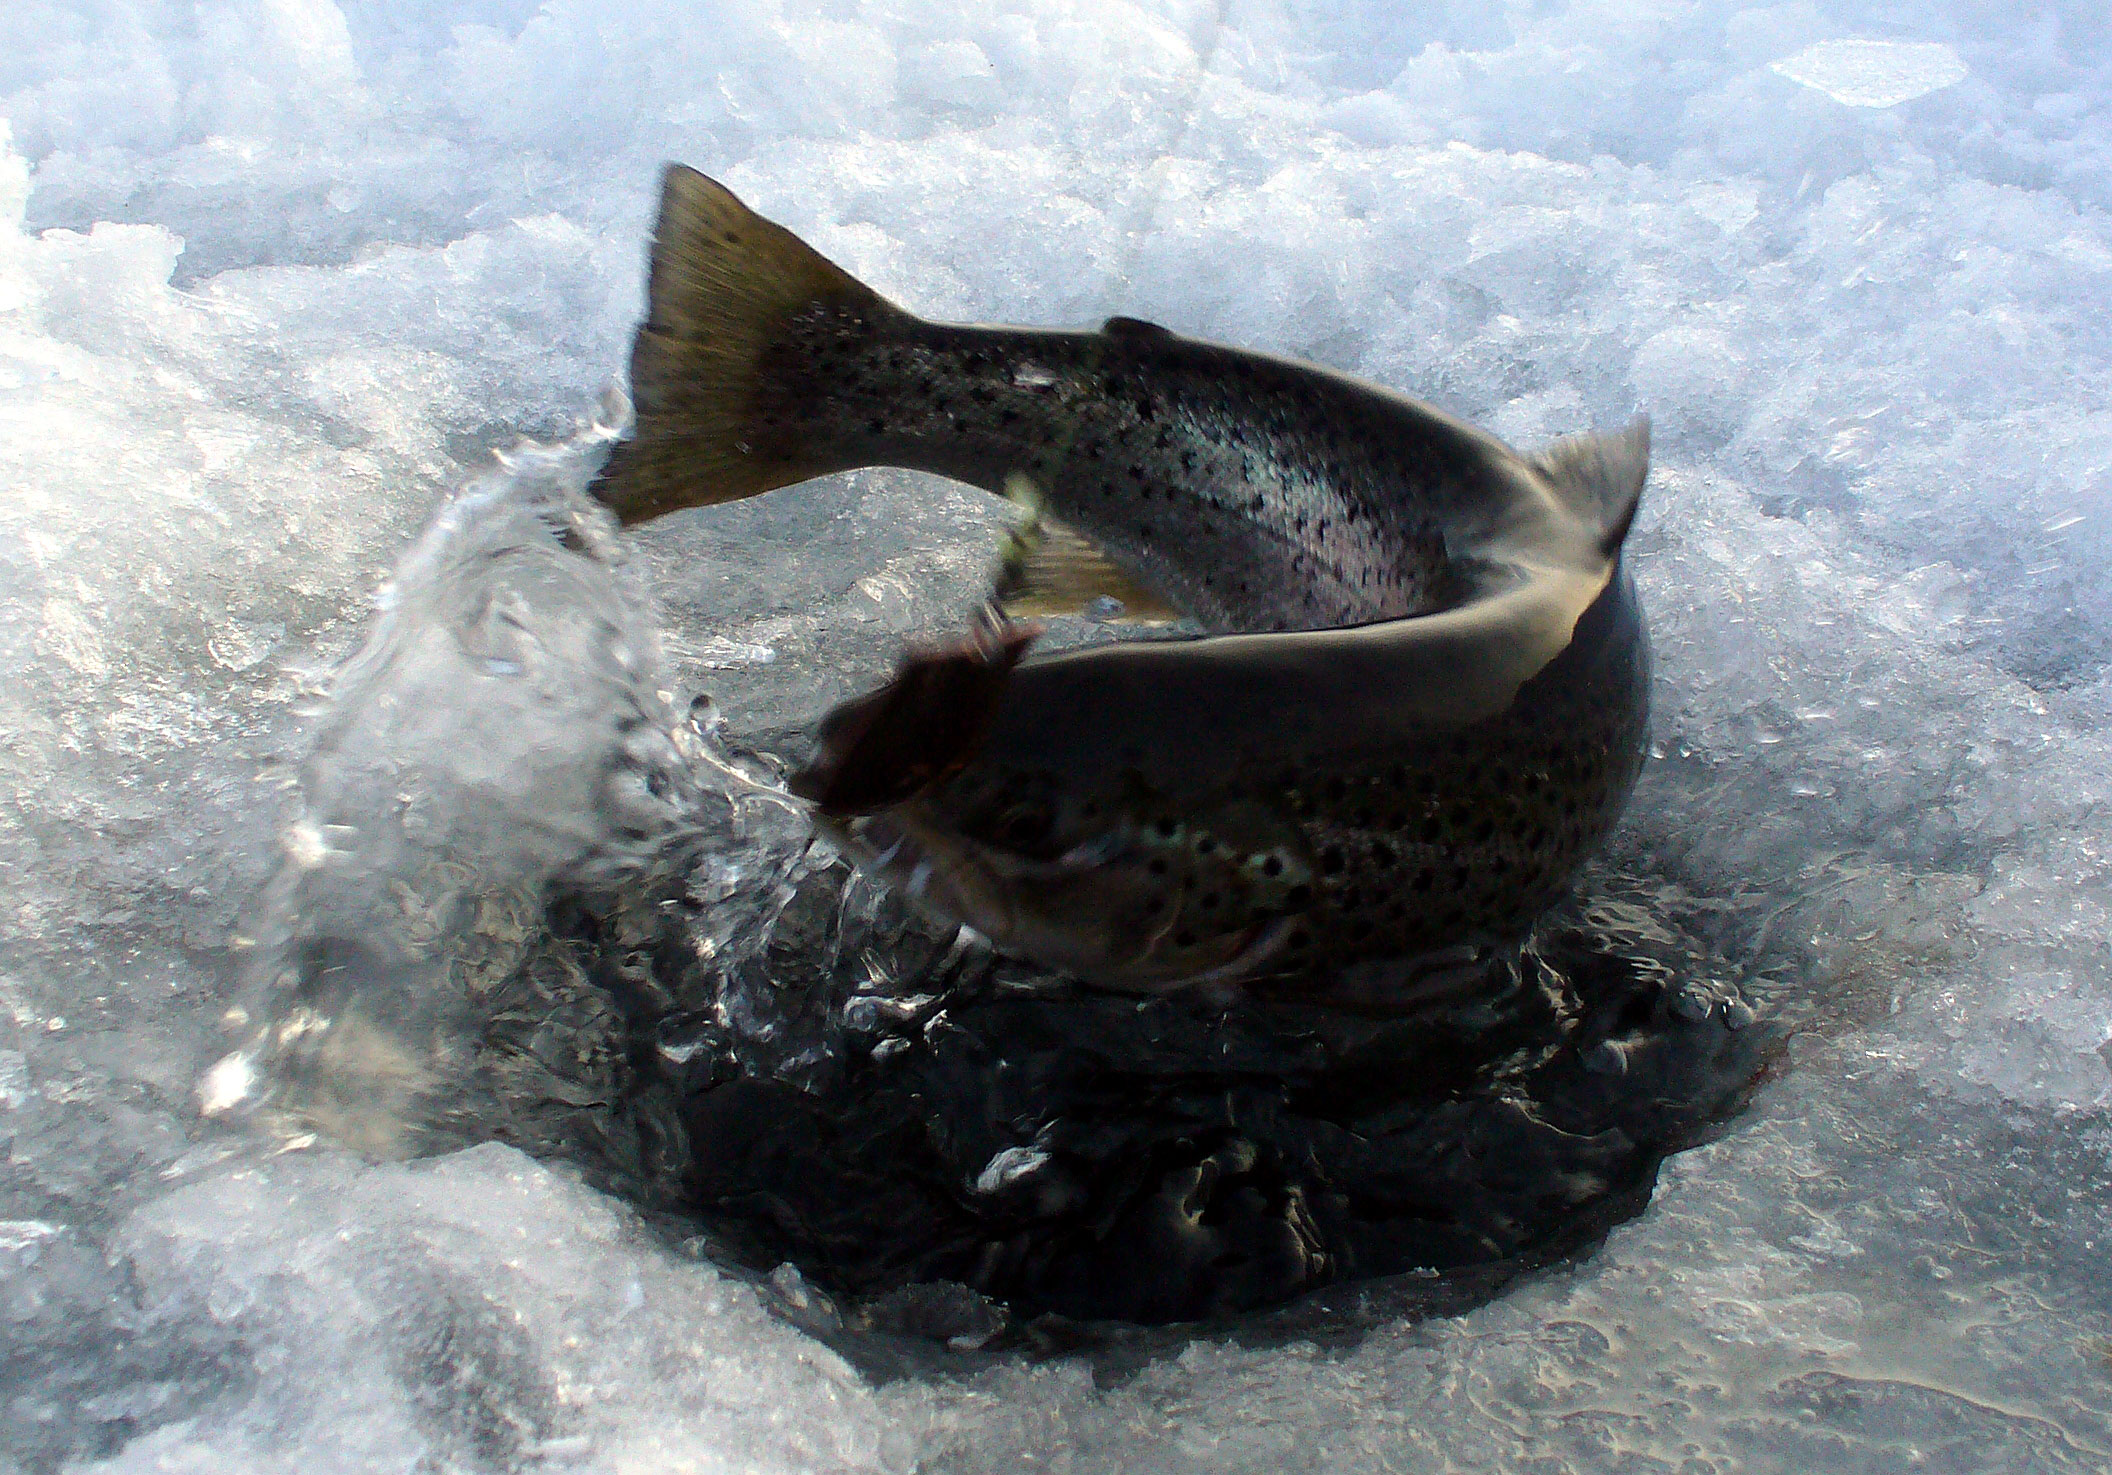 Ice fishing trout, Swedish Lapland